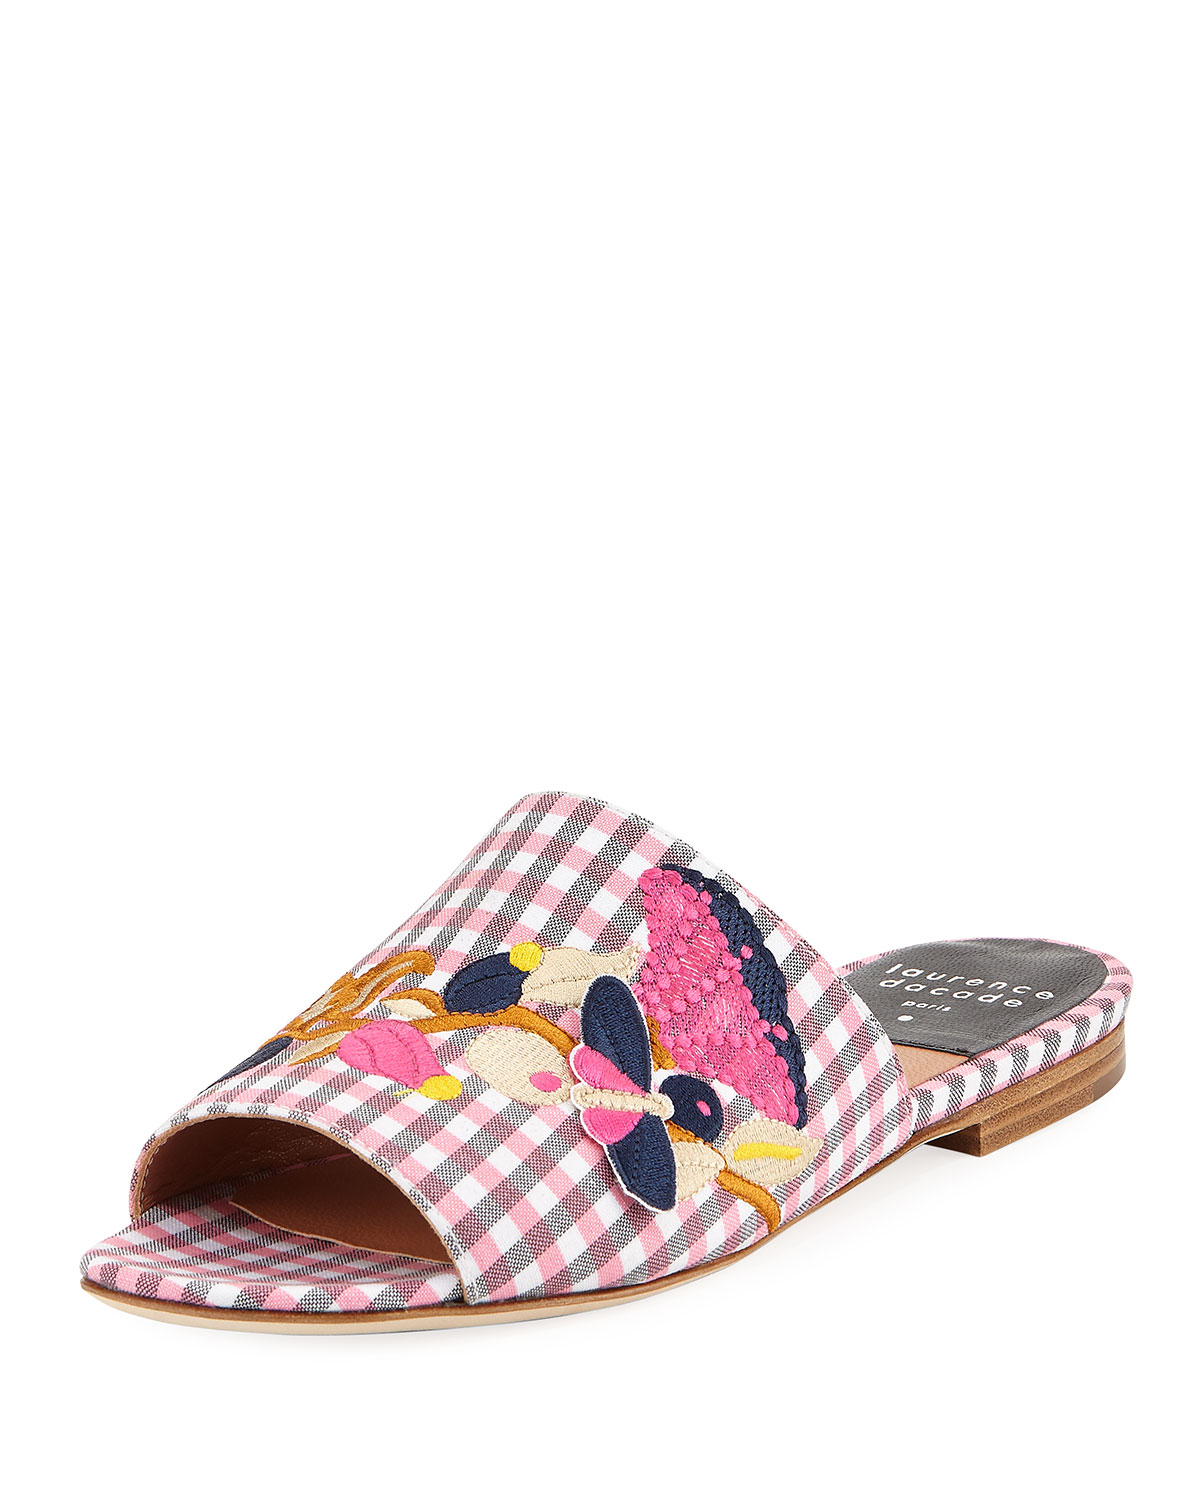 Laurence Dacade embroidered gingham sandals sale hot sale outlet 2014 new free shipping from china quality free shipping outlet latest nXSyy